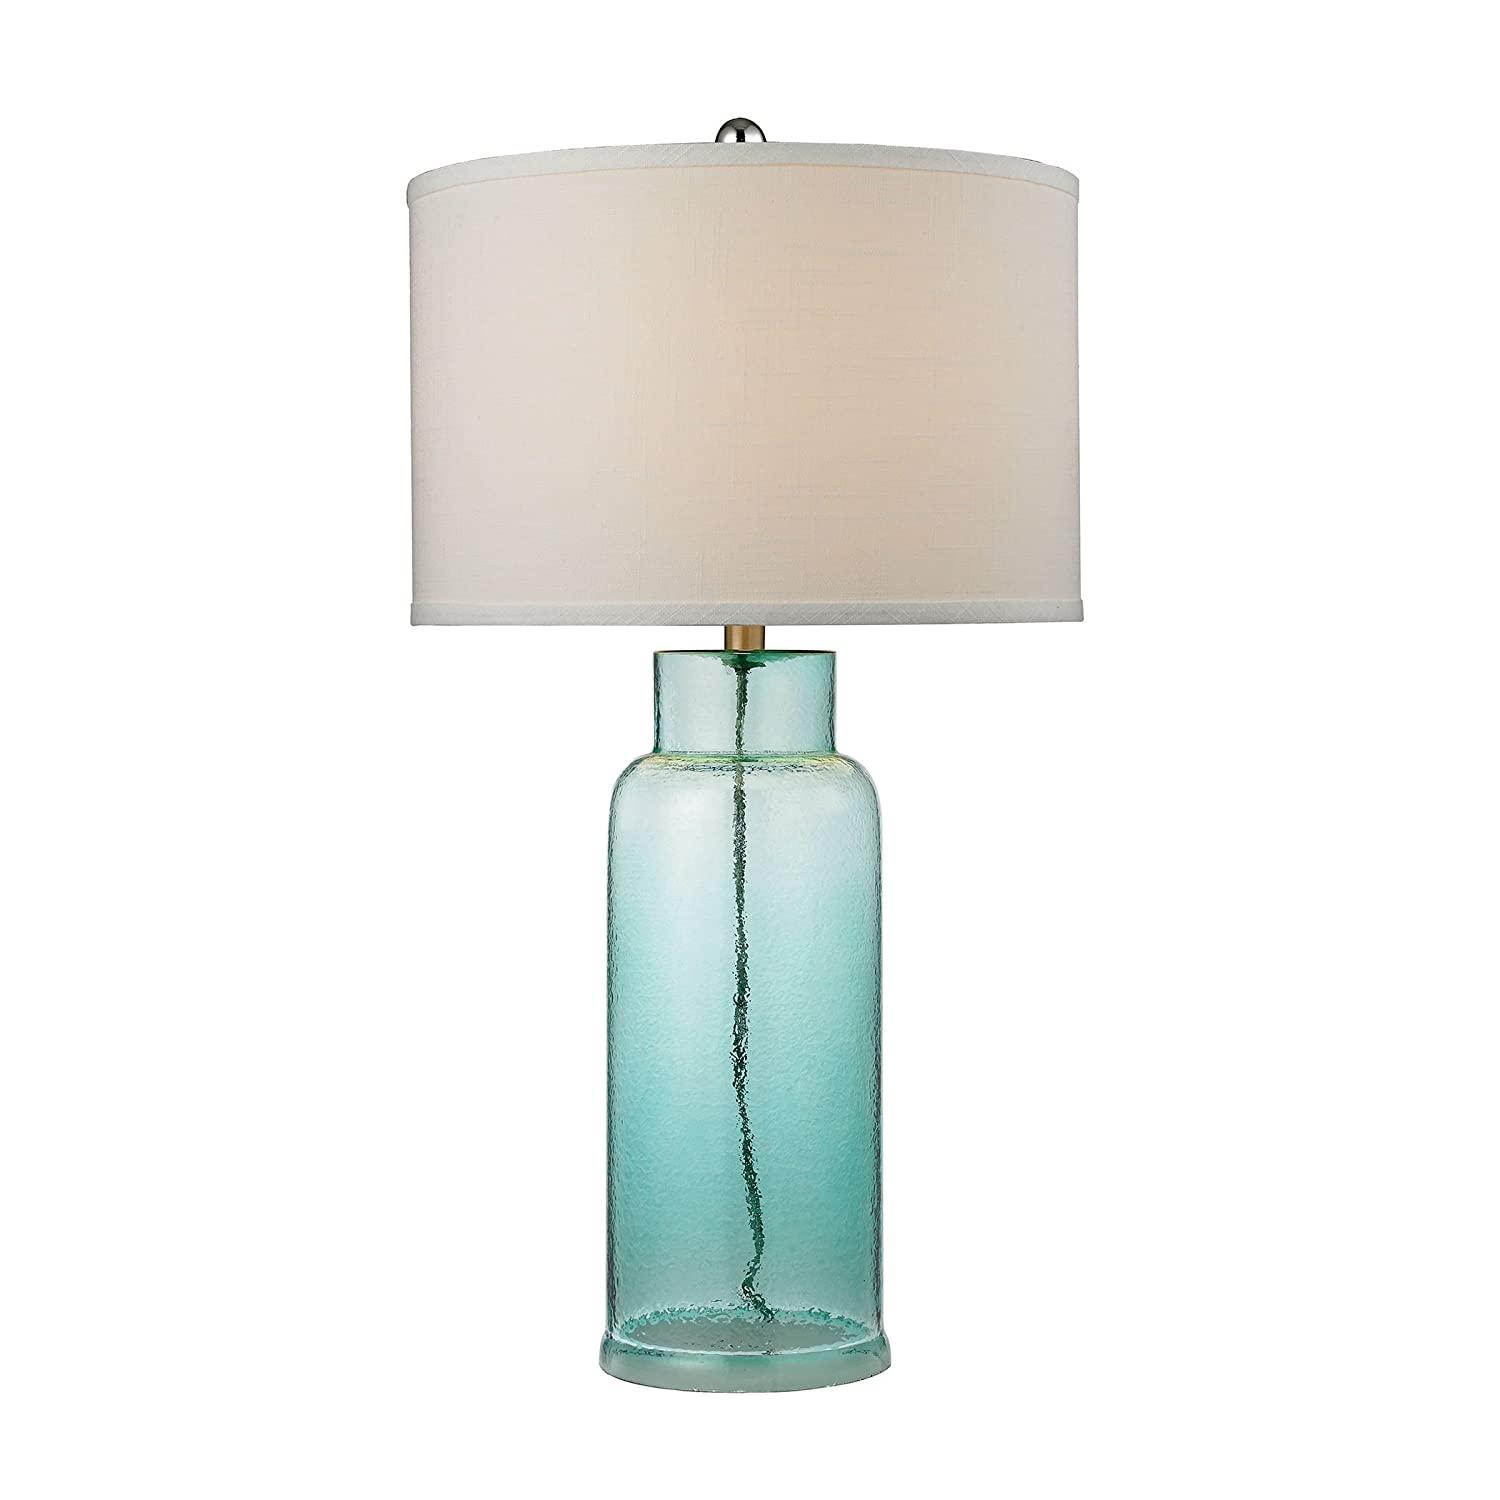 Amazon dimond lighting seafoam glass bottle table lamp home amazon dimond lighting seafoam glass bottle table lamp home improvement mozeypictures